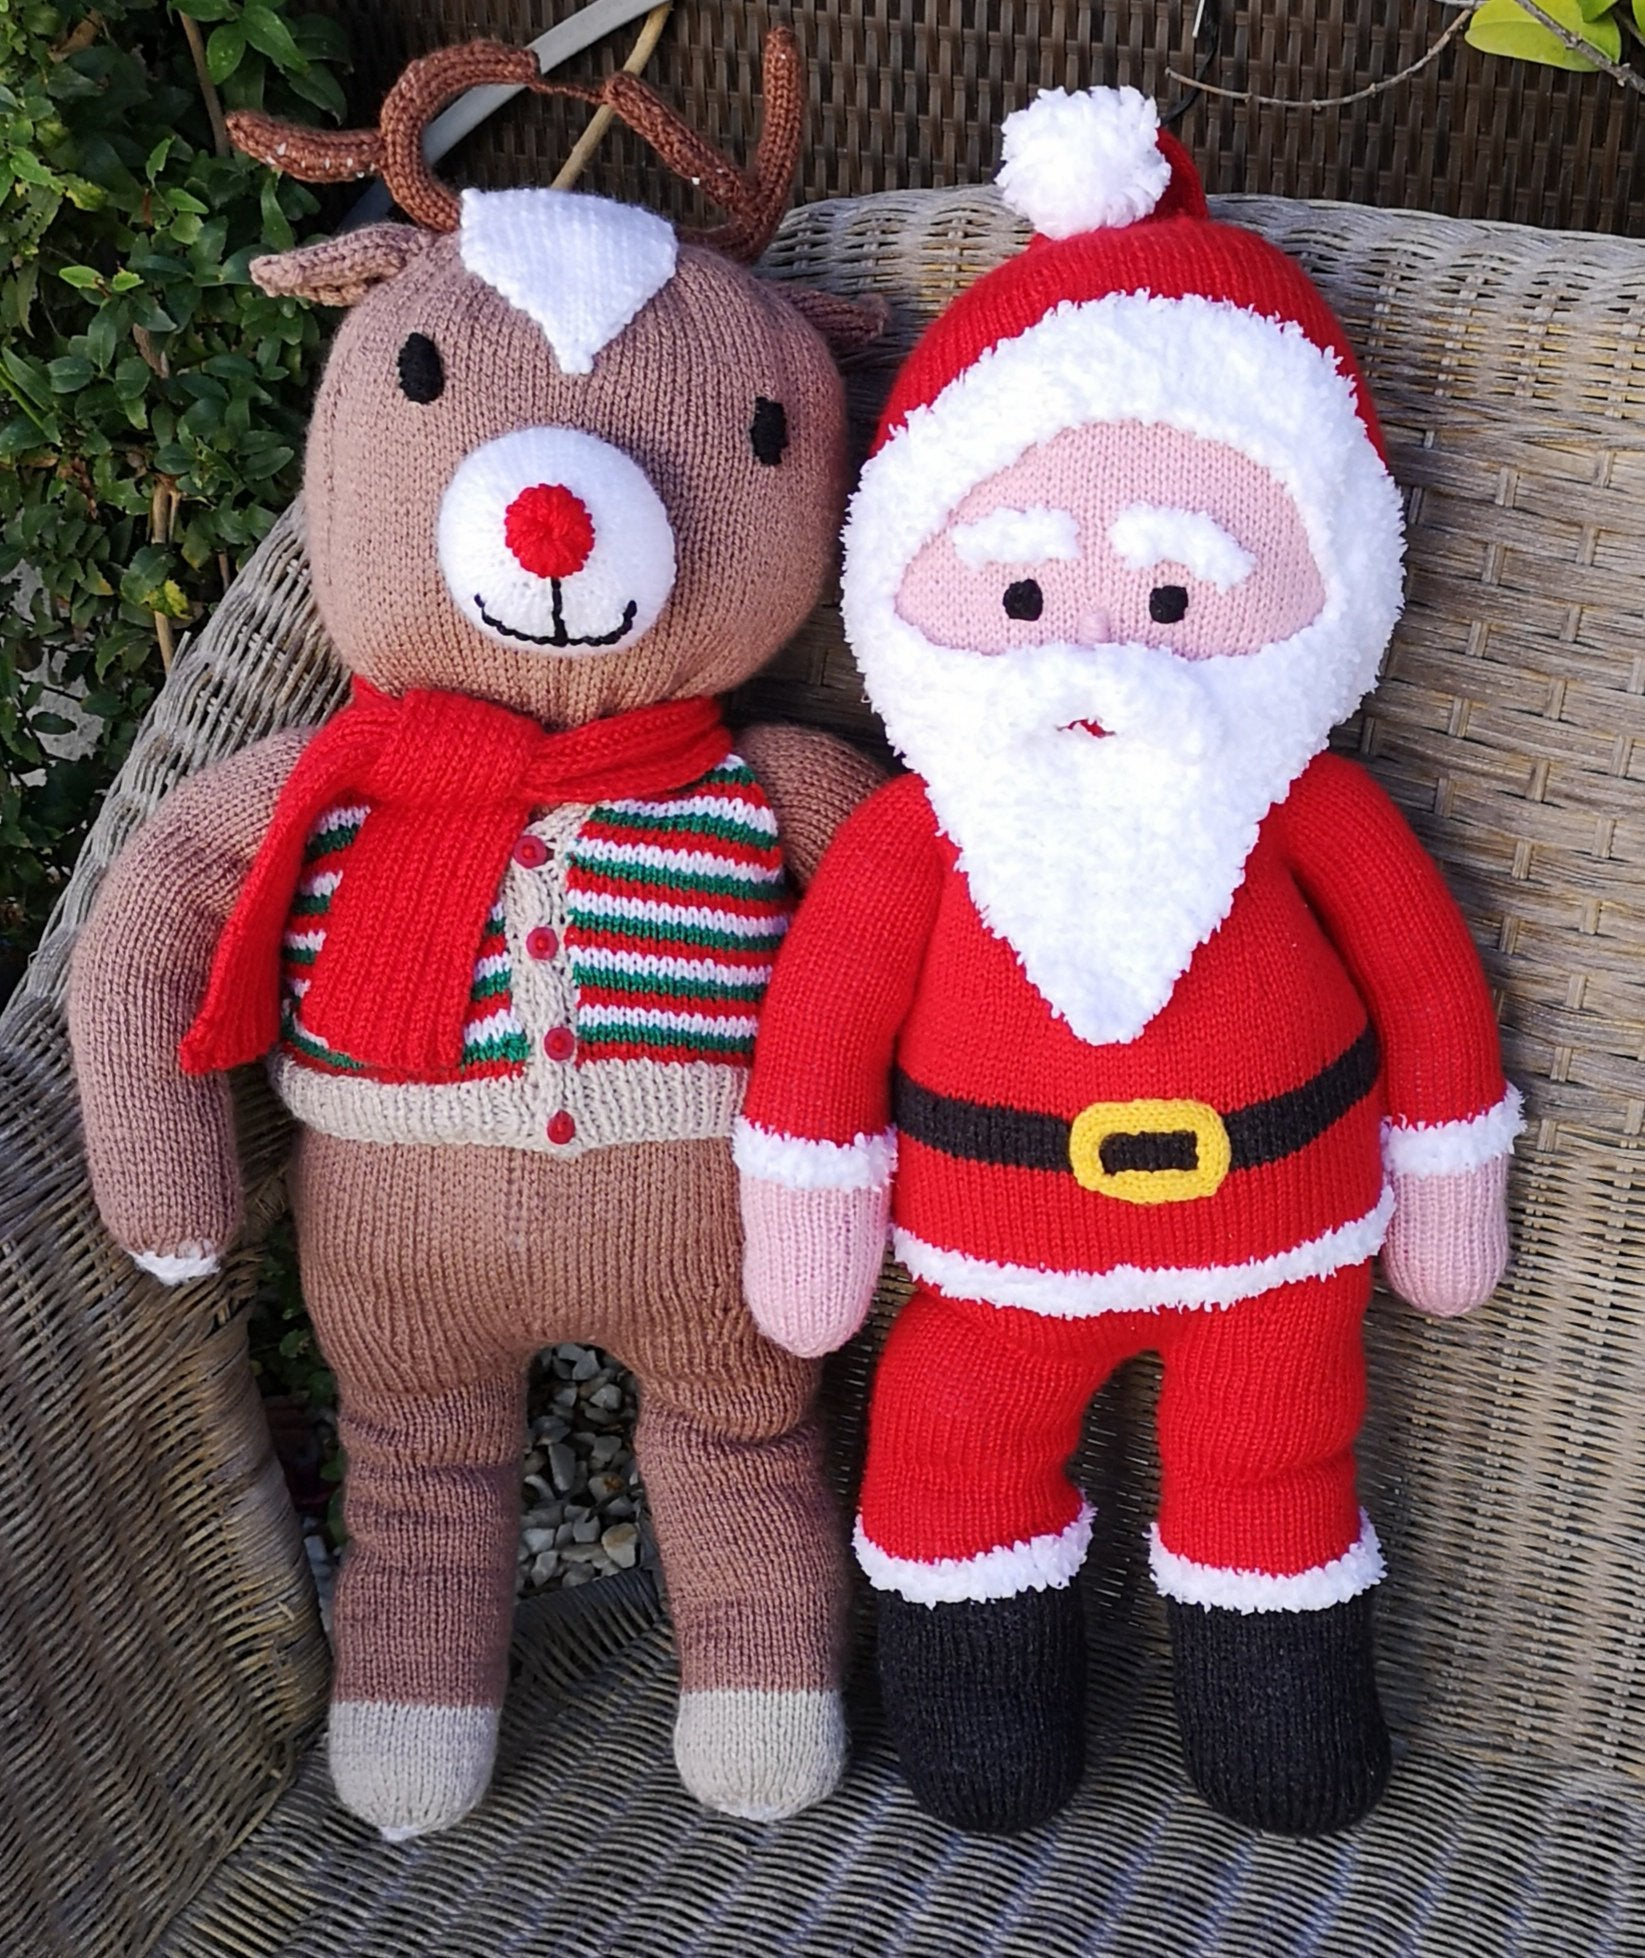 Knitting Patterns For Baby Toys Santa And Rudolph Knitting Pattern Knitted Christmas Toys Handmade